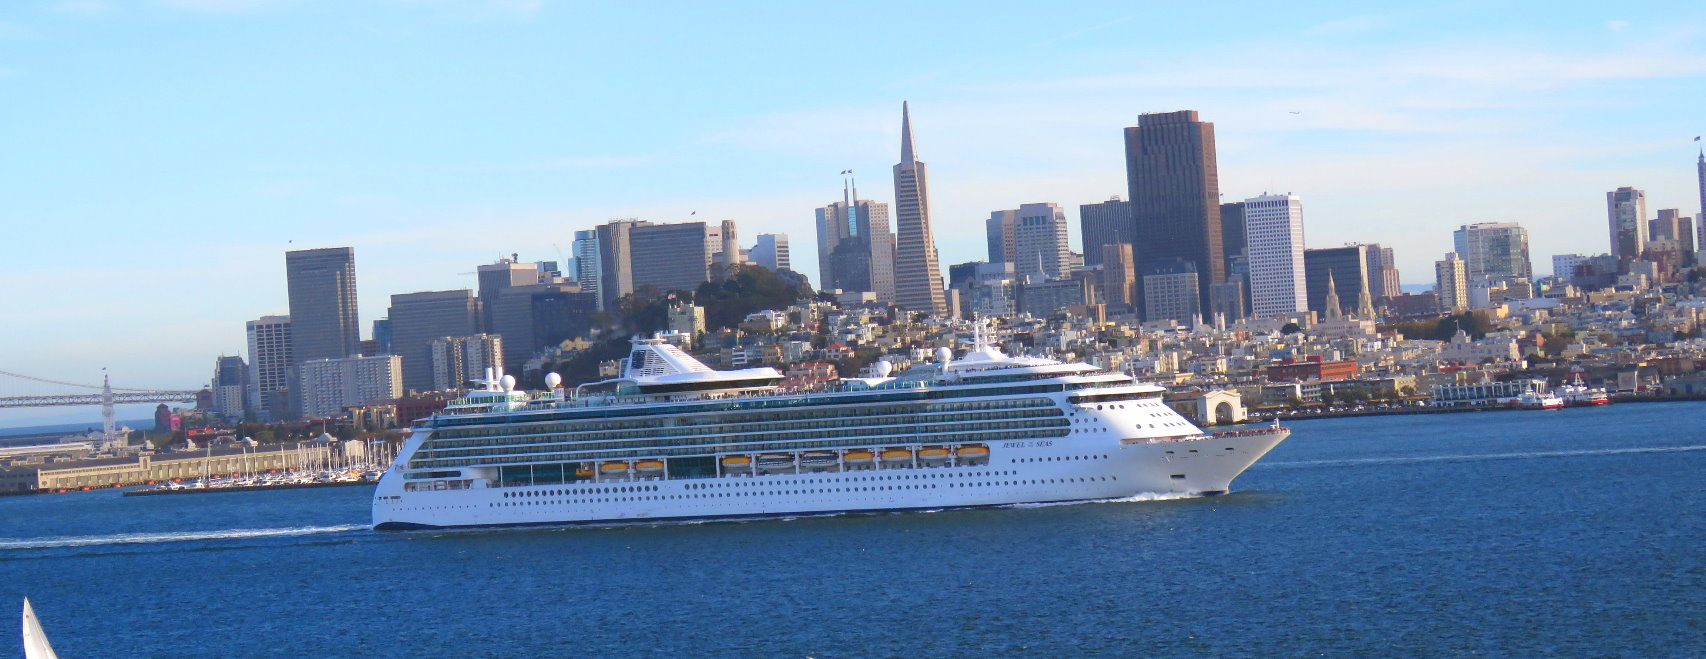 cruises_from_san_francisco_vacation_california_tourism